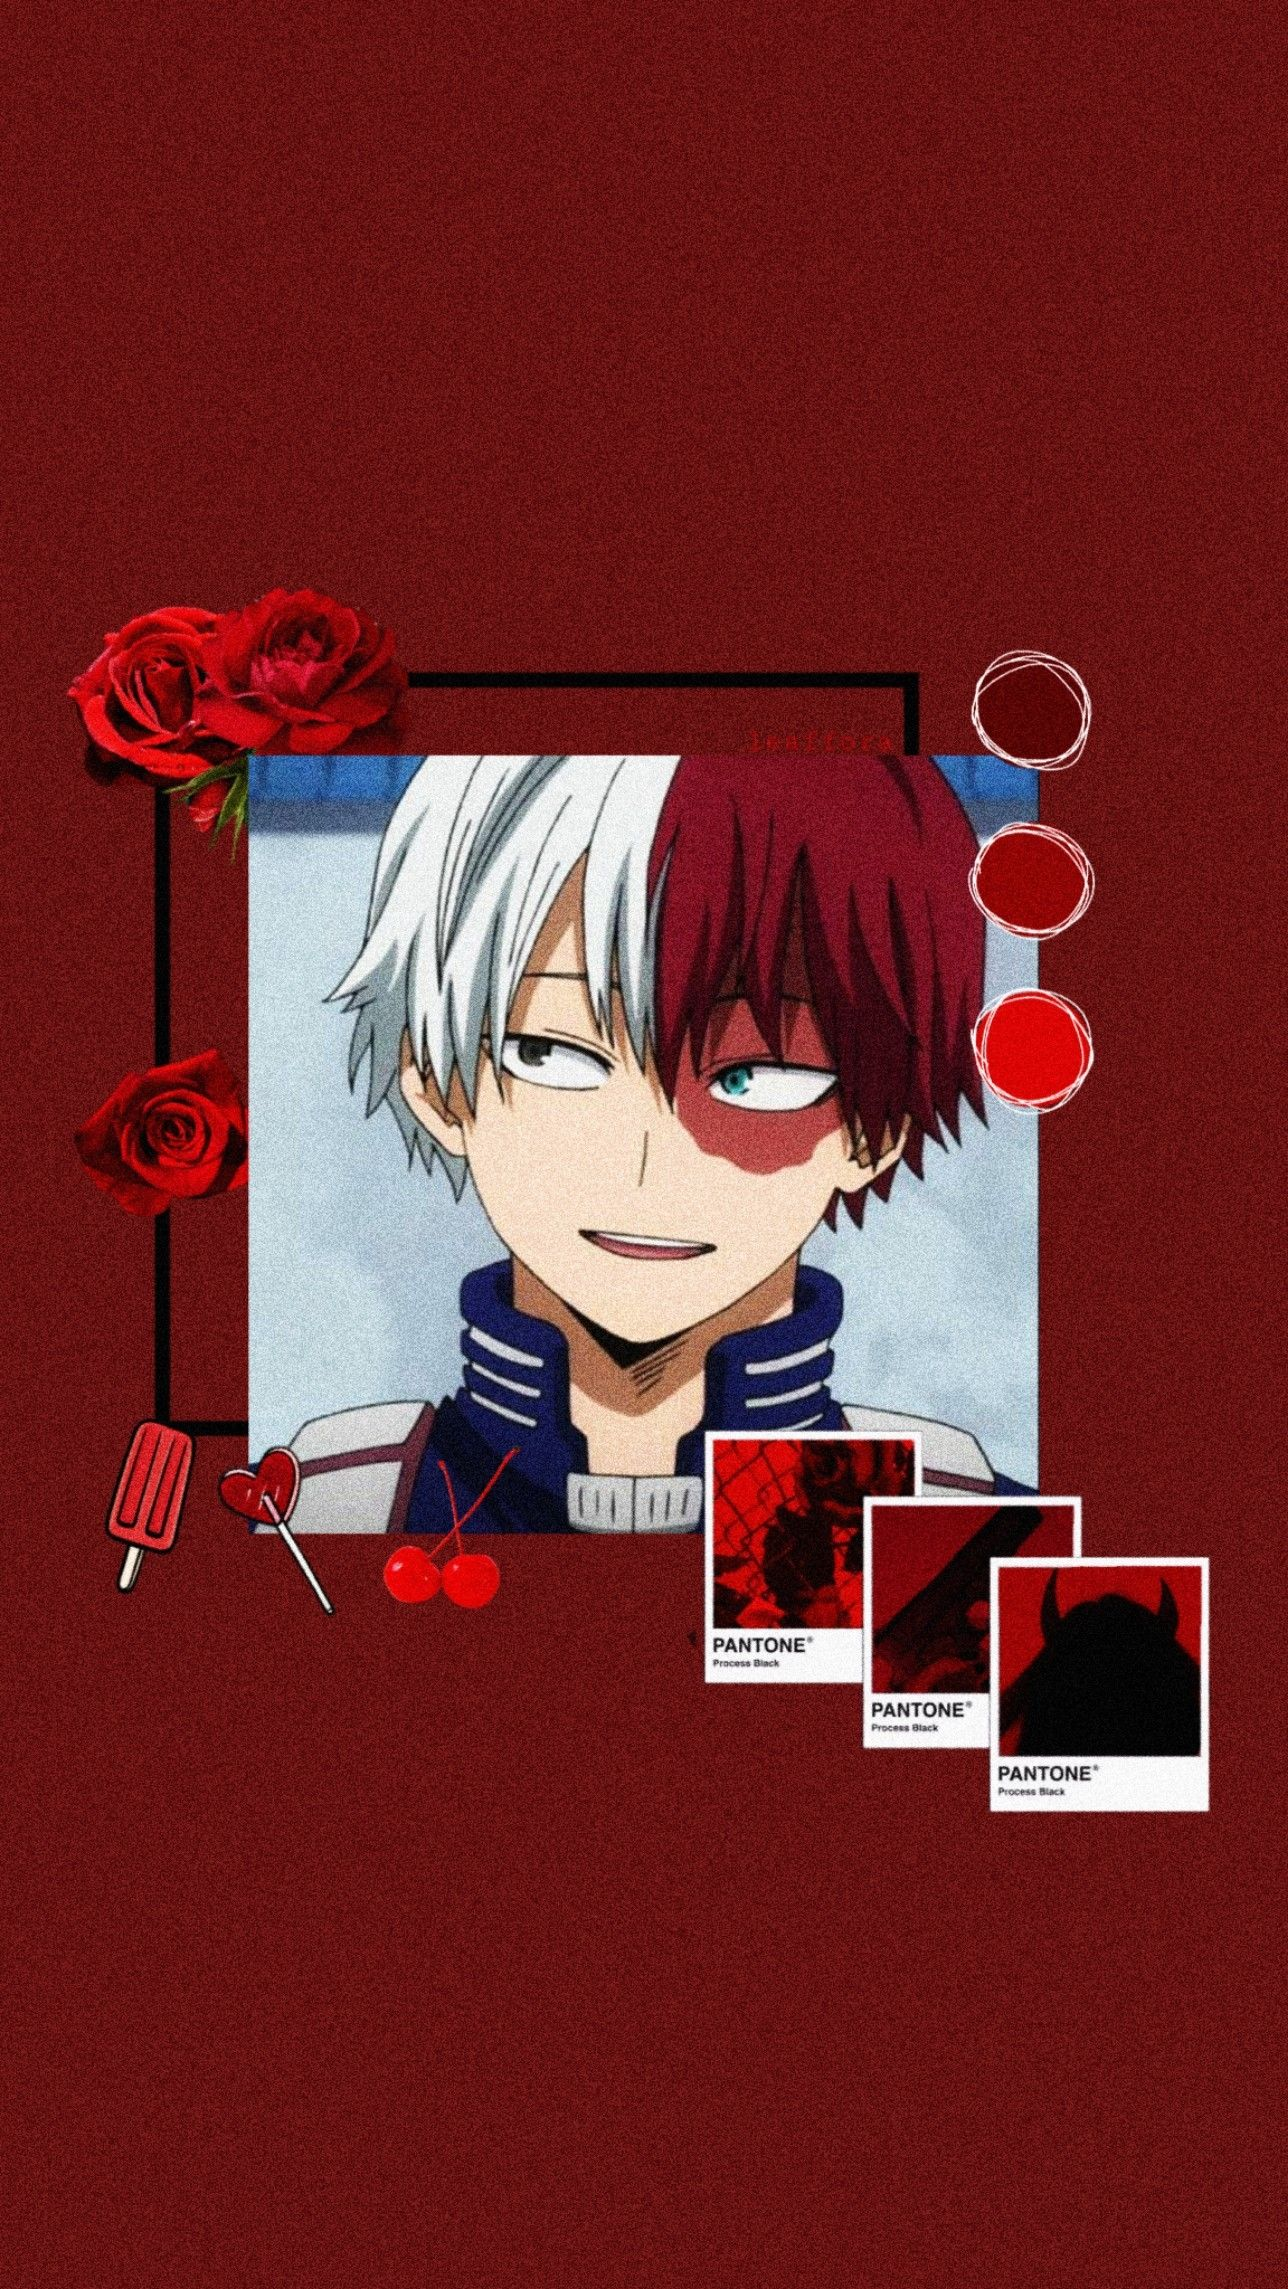 Todoroki Shoto Bnha Aesthetic Anime Wallpaper In 2020 Anime Wallpaper Aesthetic Anime Cool Anime Wallpapers